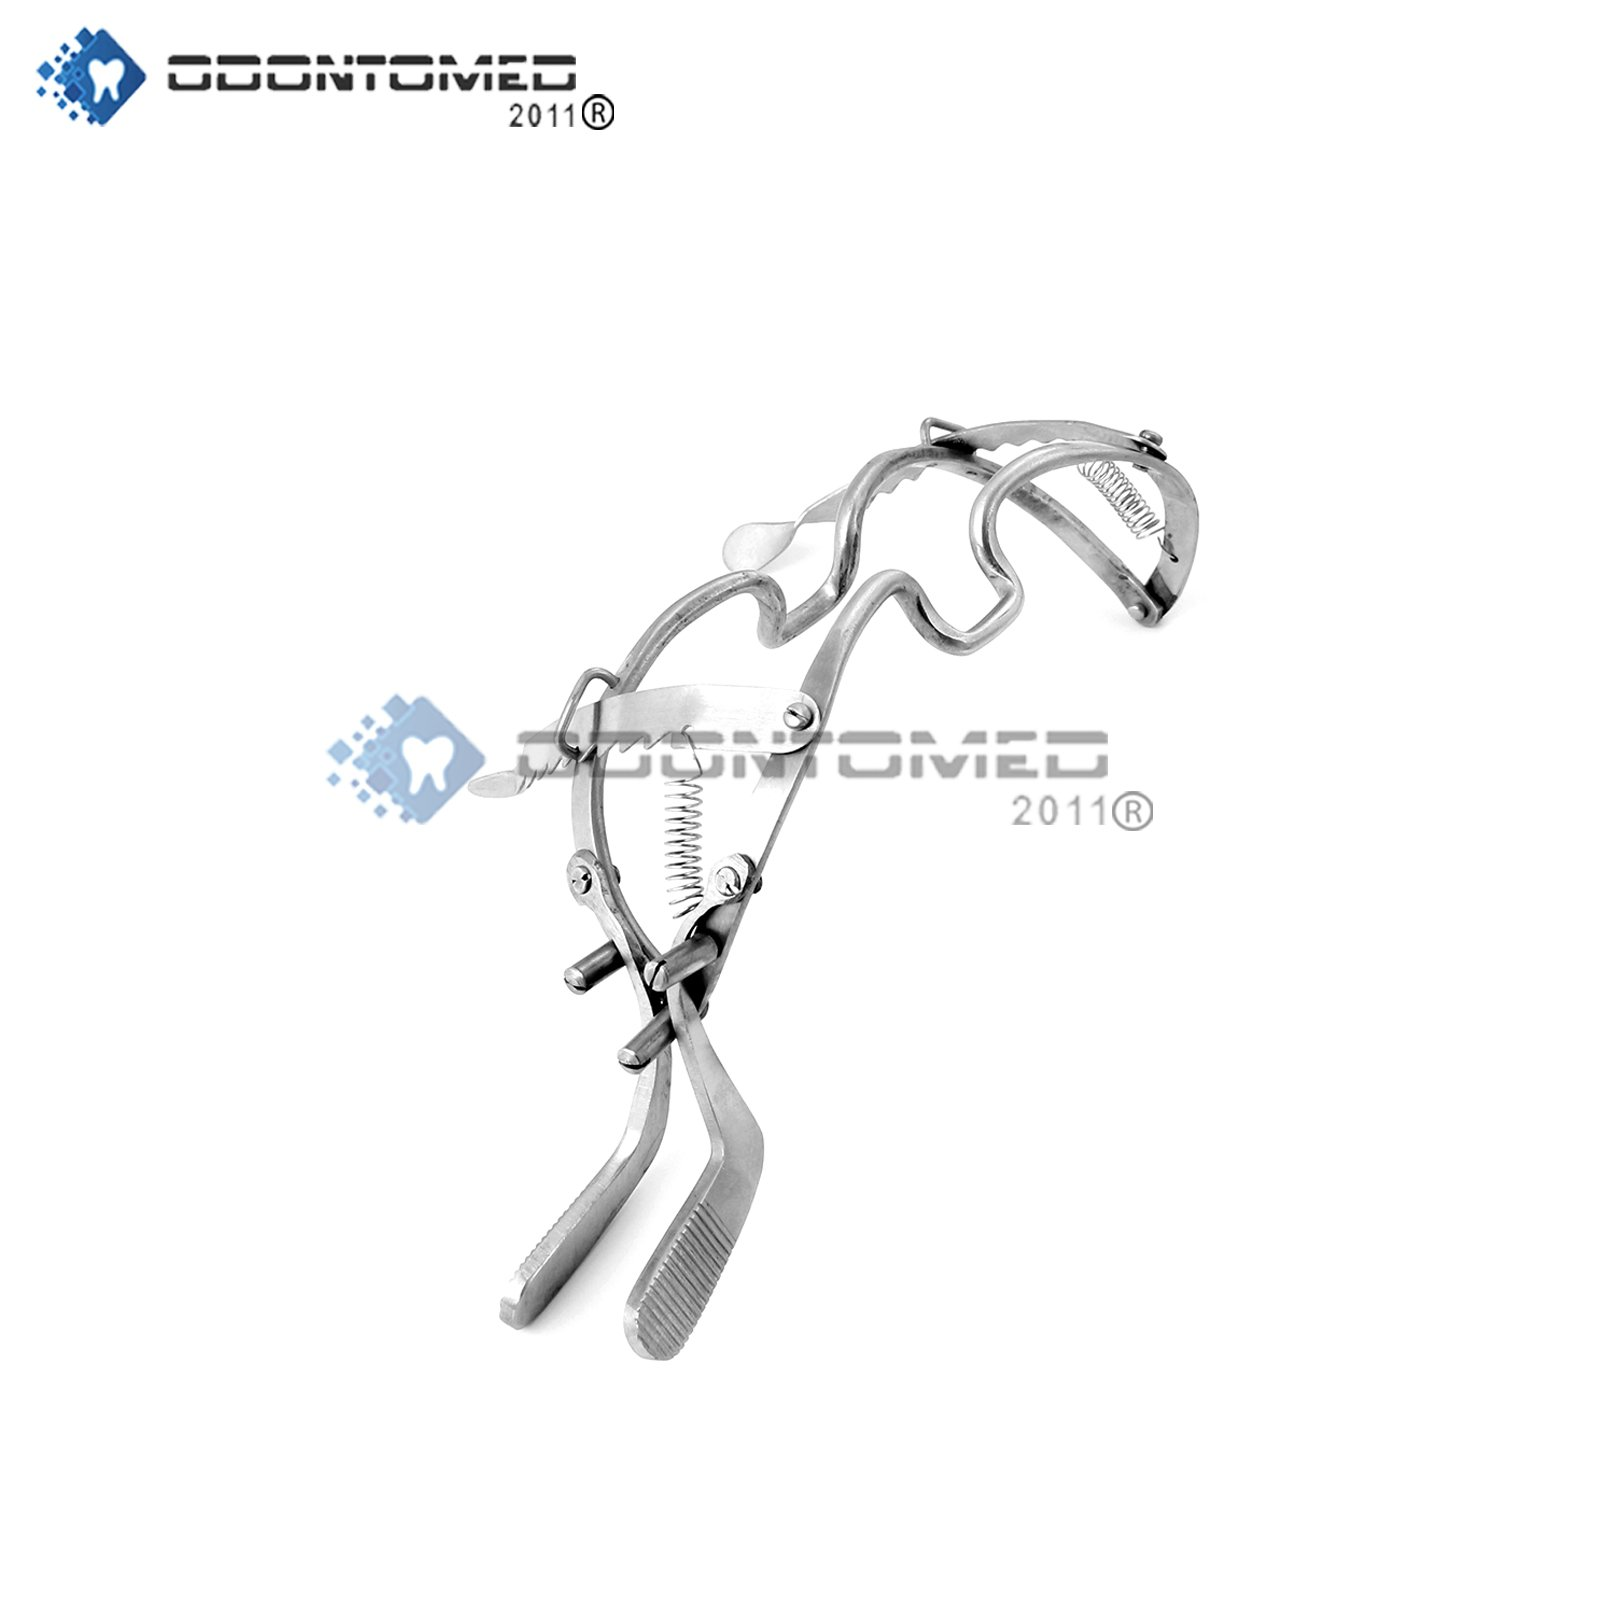 OdontoMed2011 5'' WHITEHEAD DENTAL MOUTH IMMOBILIZER GAG STAINLESS STEEL